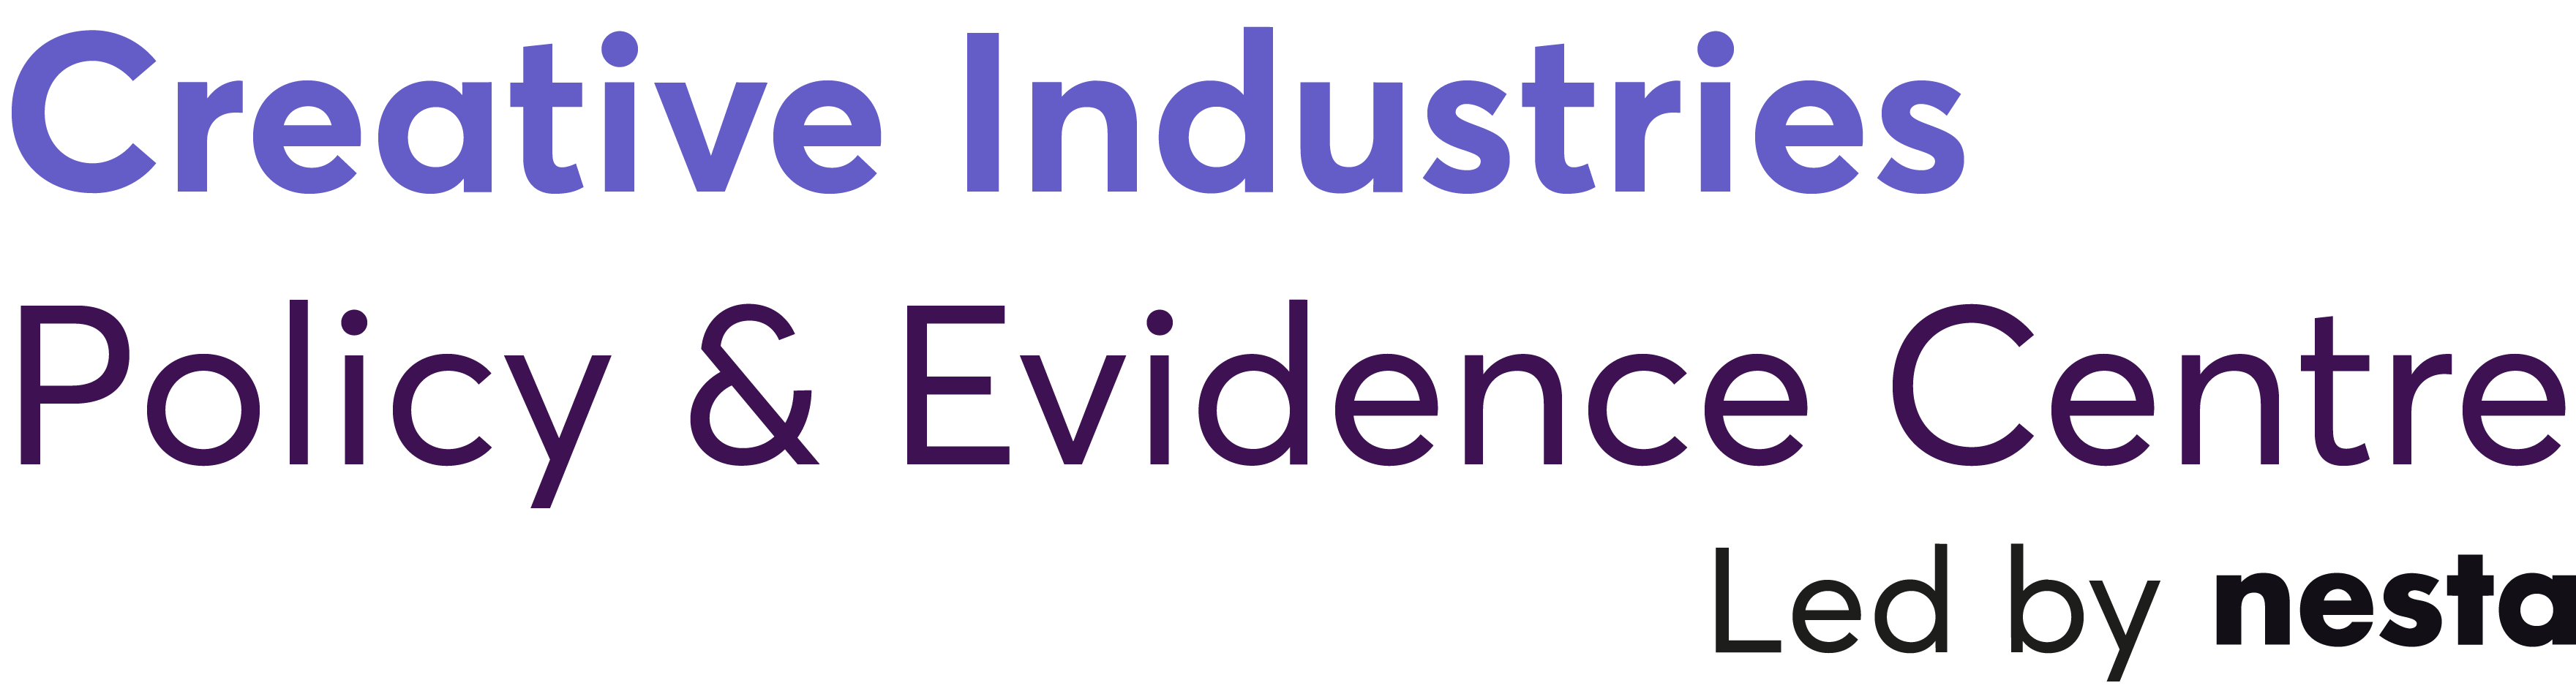 Creative Industries Policy & Evidence Centre Led by Nesta